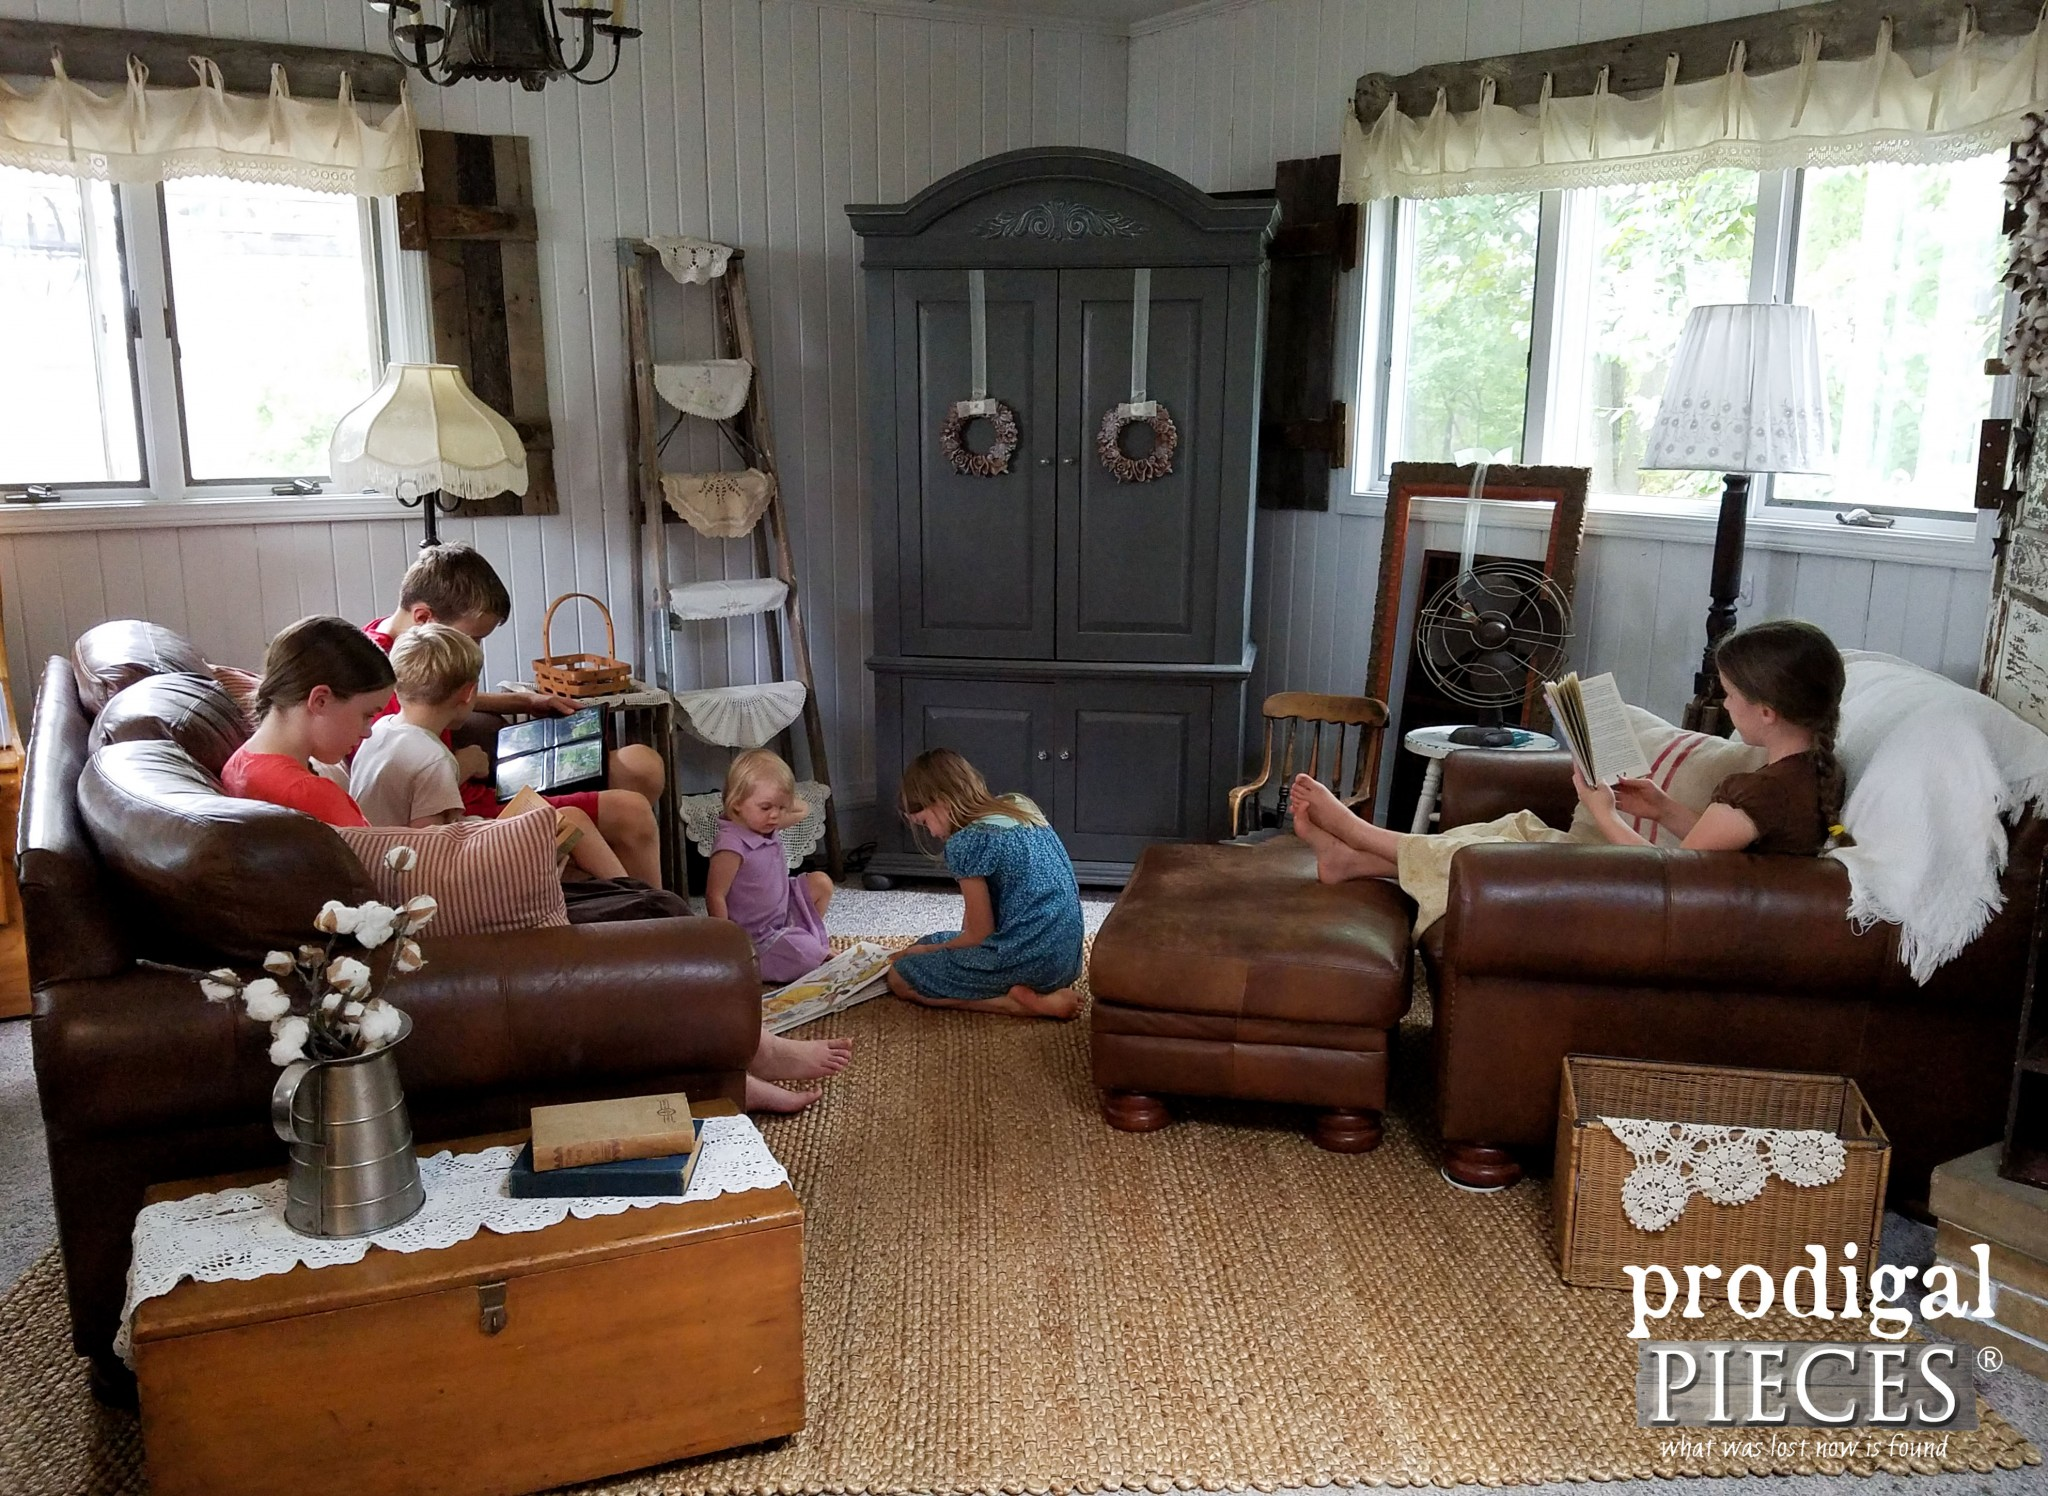 Large Family Enjoying Cozy Farmhouse Family Room | Prodigal Pieces | www.prodigalpieces.com